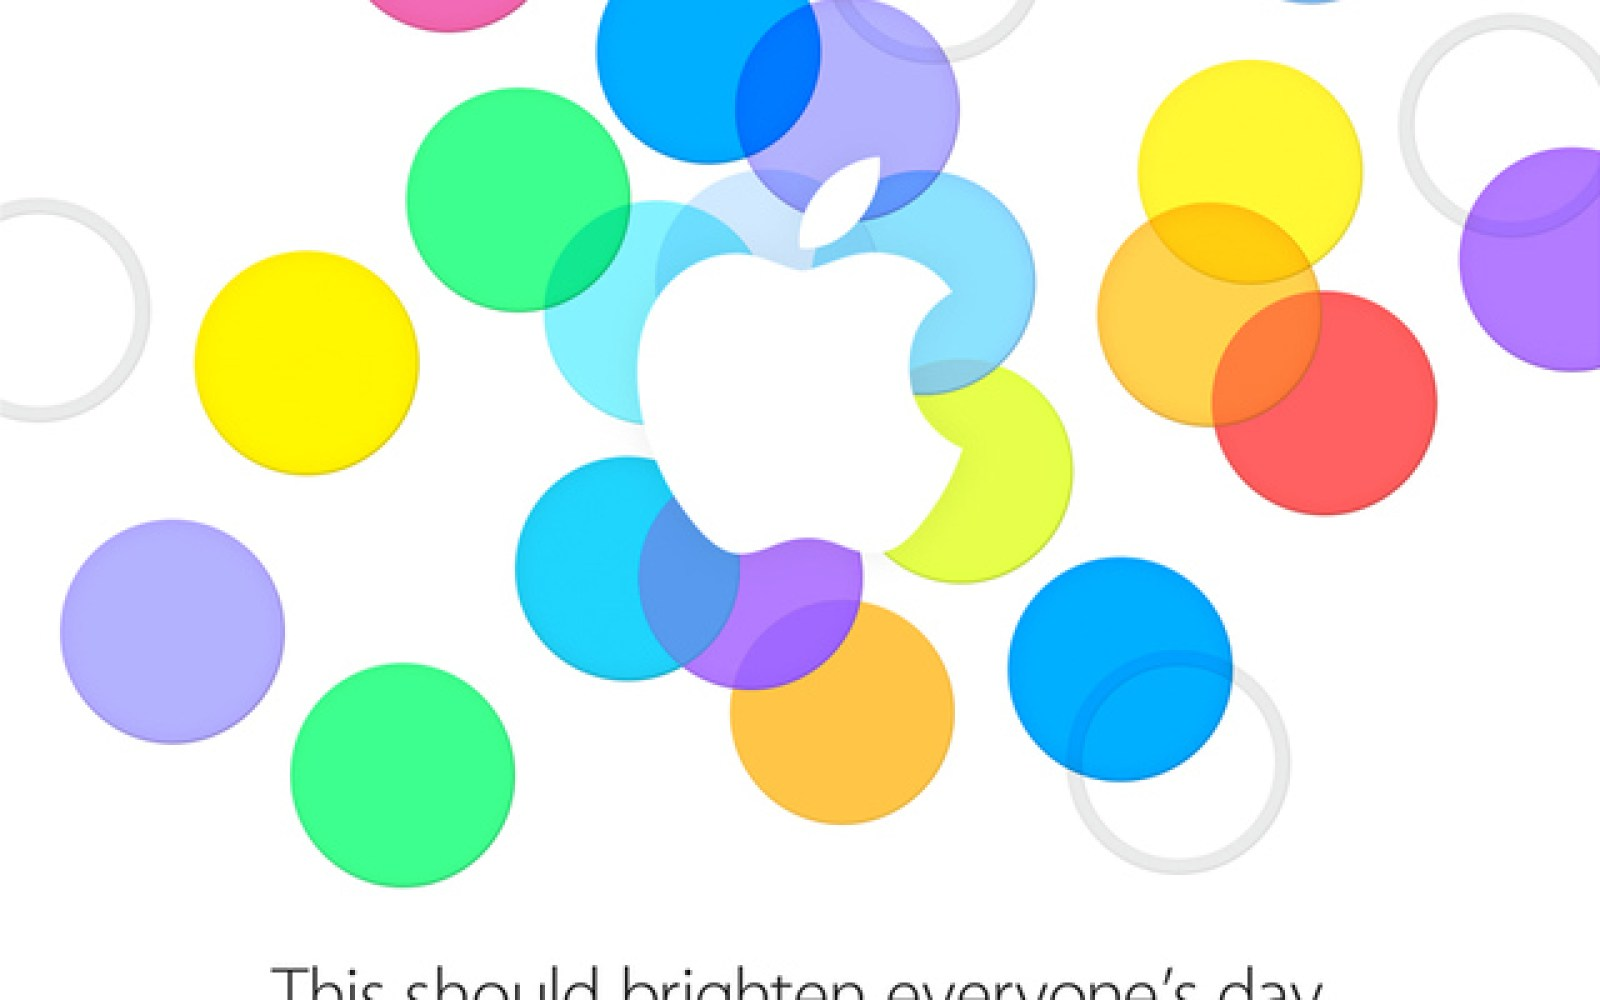 Apple announces its September 10 iPhone event in Cupertino: 'This should brighten everyone's day'